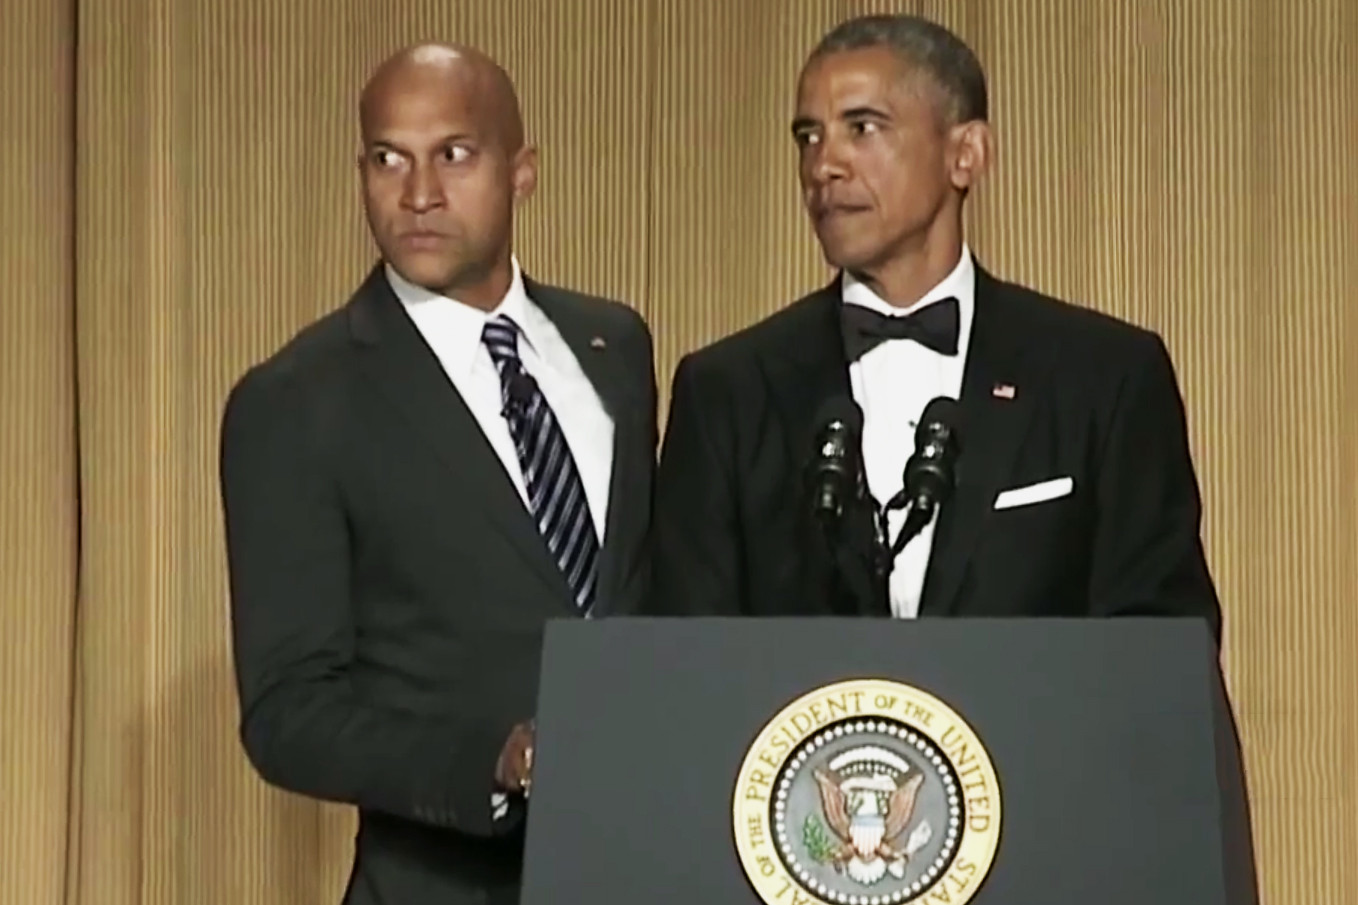 watch-keegan-michael-key-of-key-and-peele-perform-a-real-skit-with-barack-obama-0